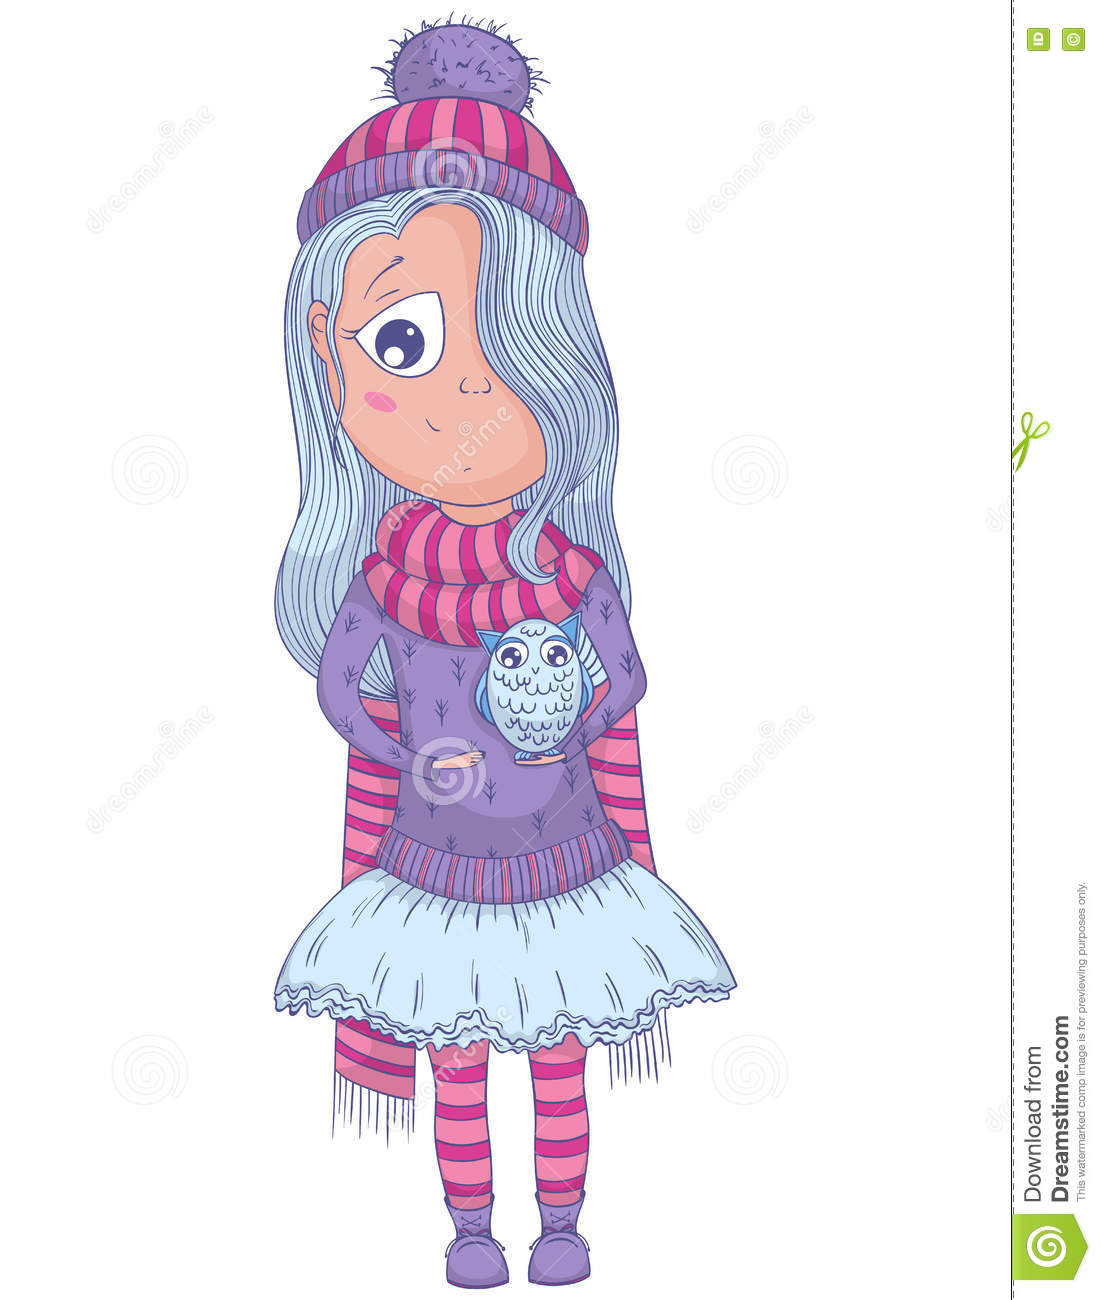 cute anime girl in tutu and winter clothes with owl stock